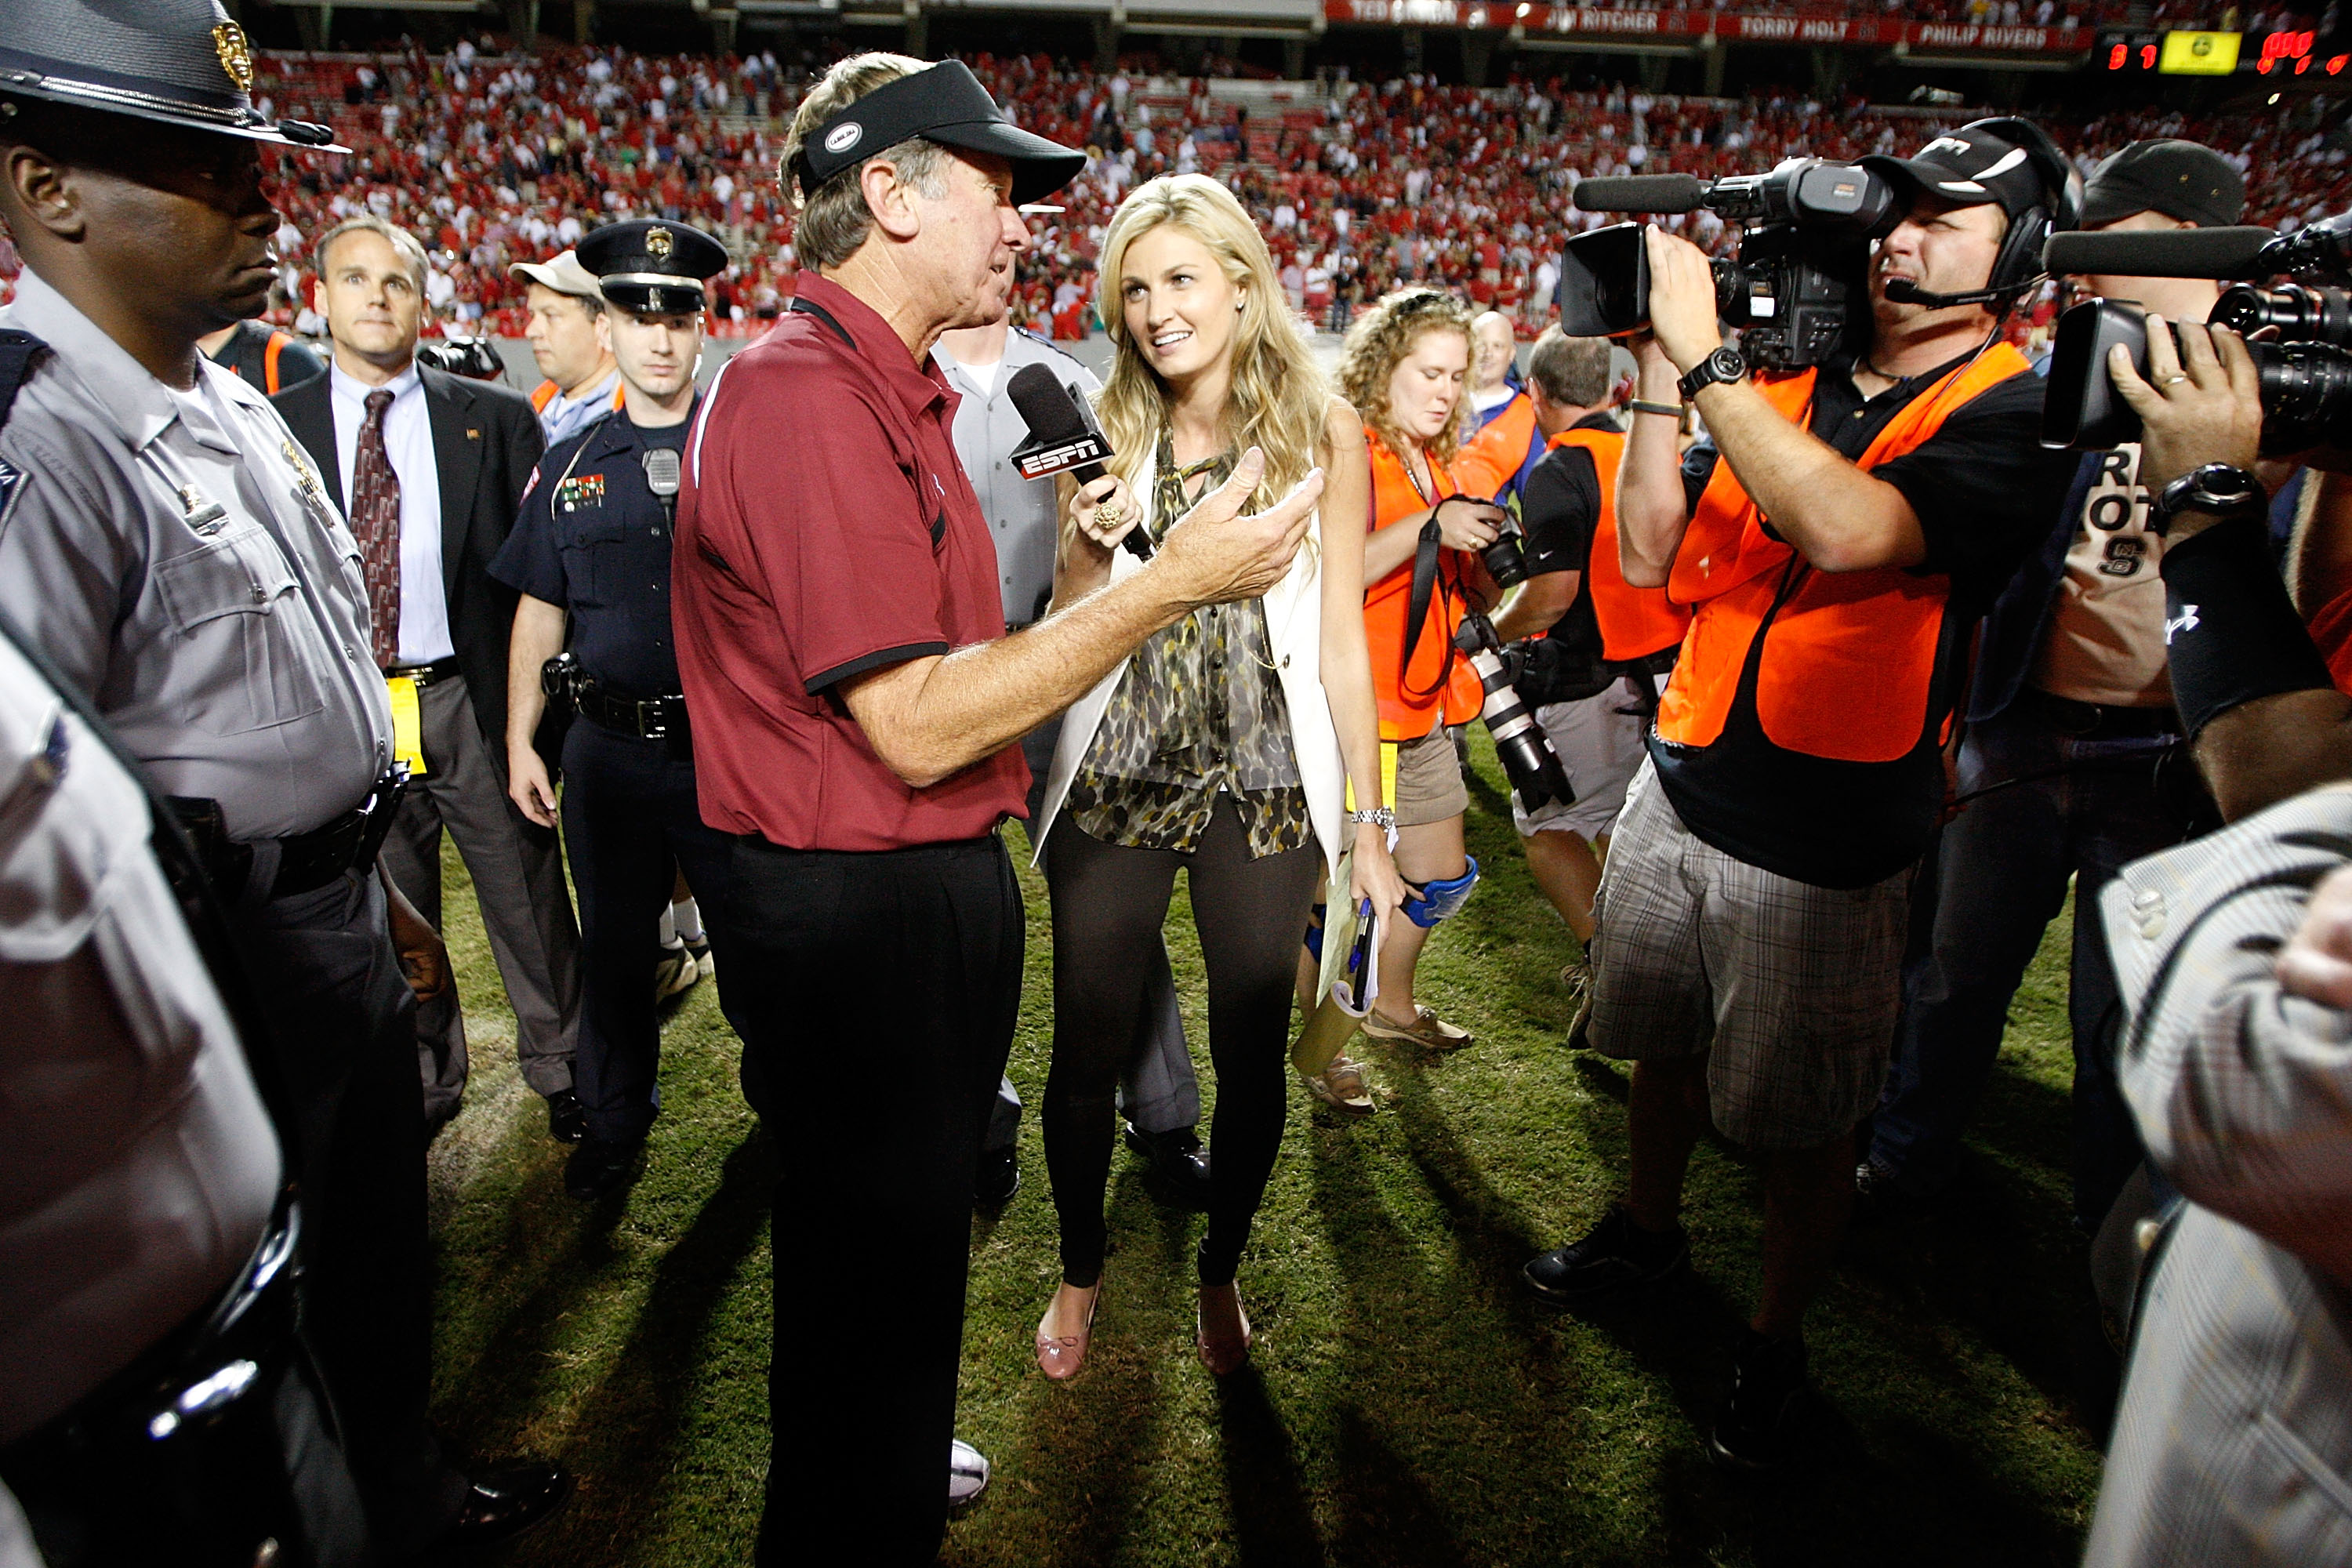 RALEIGH, NC - SEPTEMBER 3:  ESPN sideline reporter Erin Andrews interviews head coach Steve Spurrier of the South Carolina Gamecocks after their game against the North Carolina State Wolfpack at Carter-Finley Stadium on September 3, 2009 in Raleigh, North